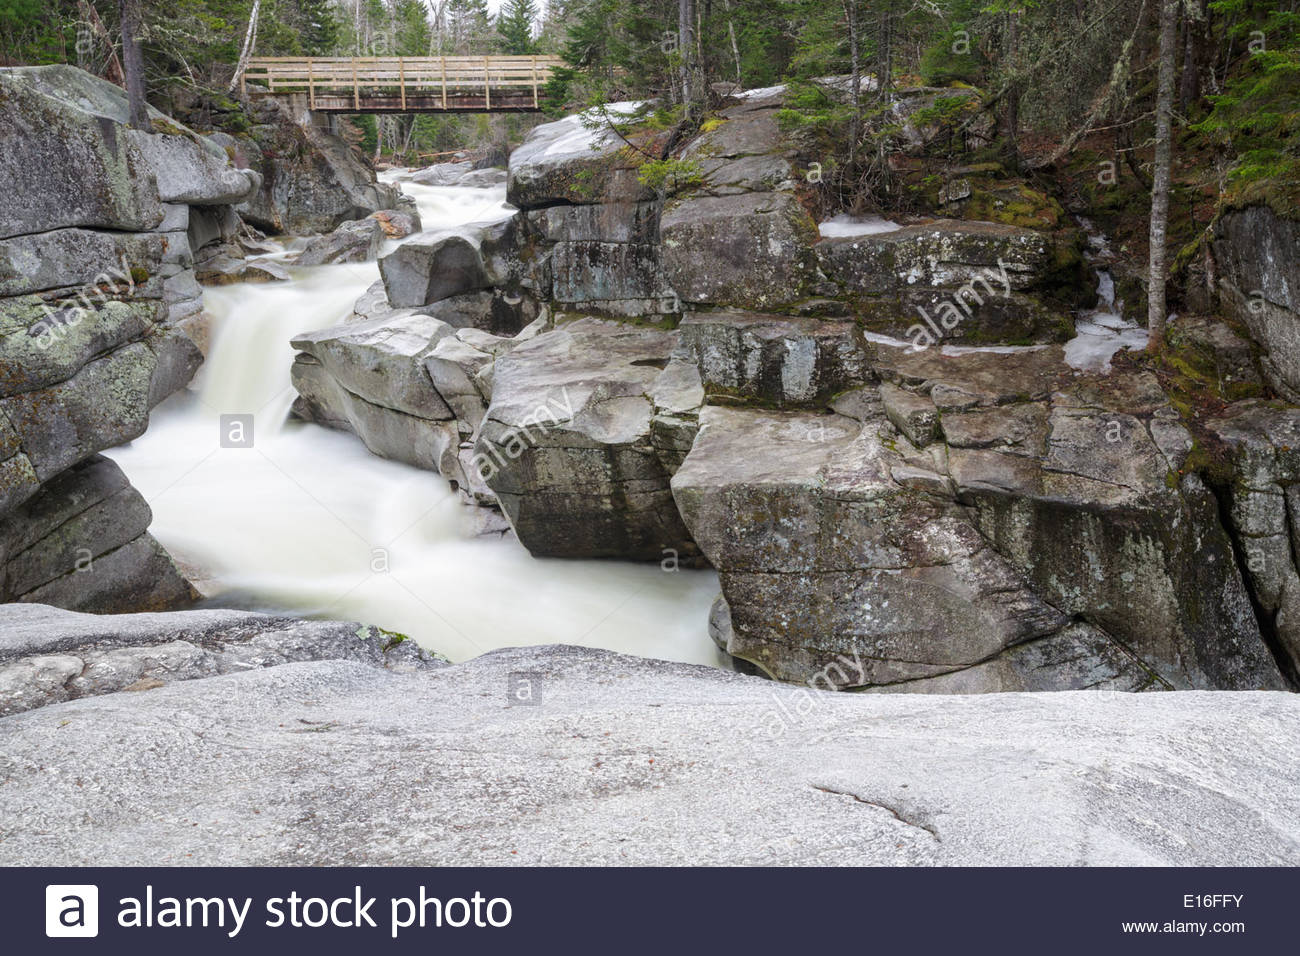 Ammonoosuc River clipart #7, Download drawings